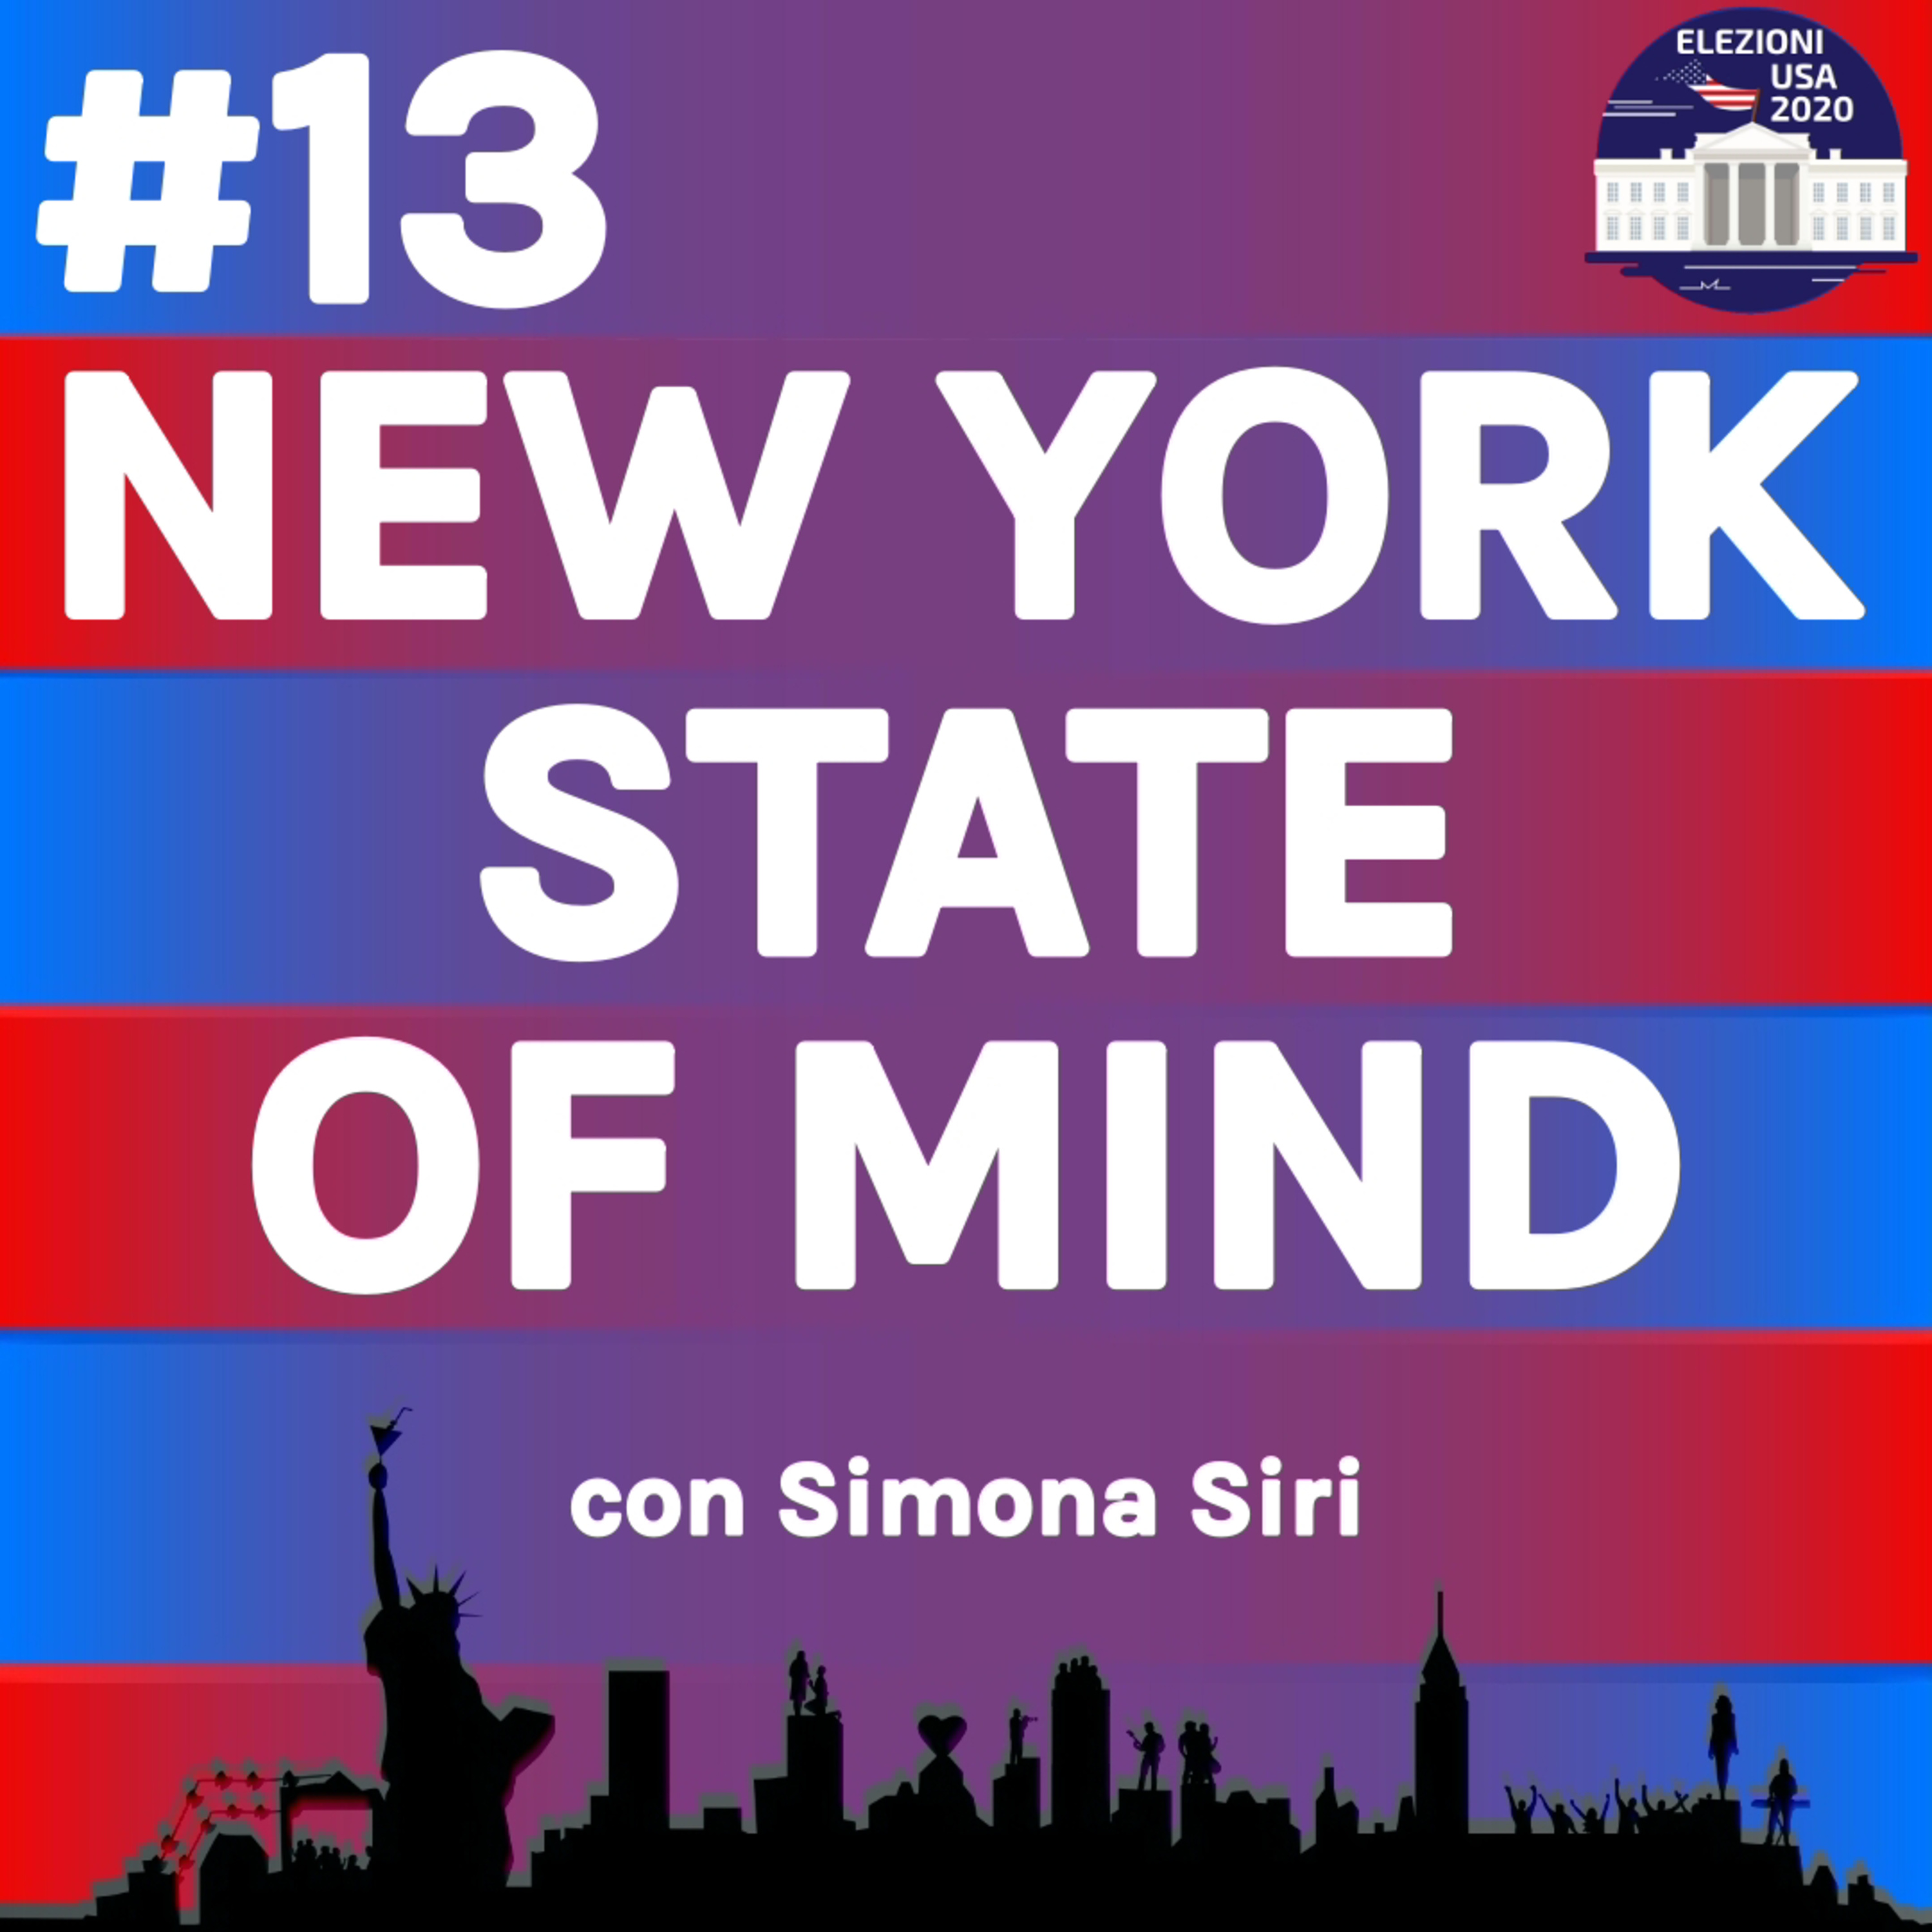 New York State of Mind con Simona Siri